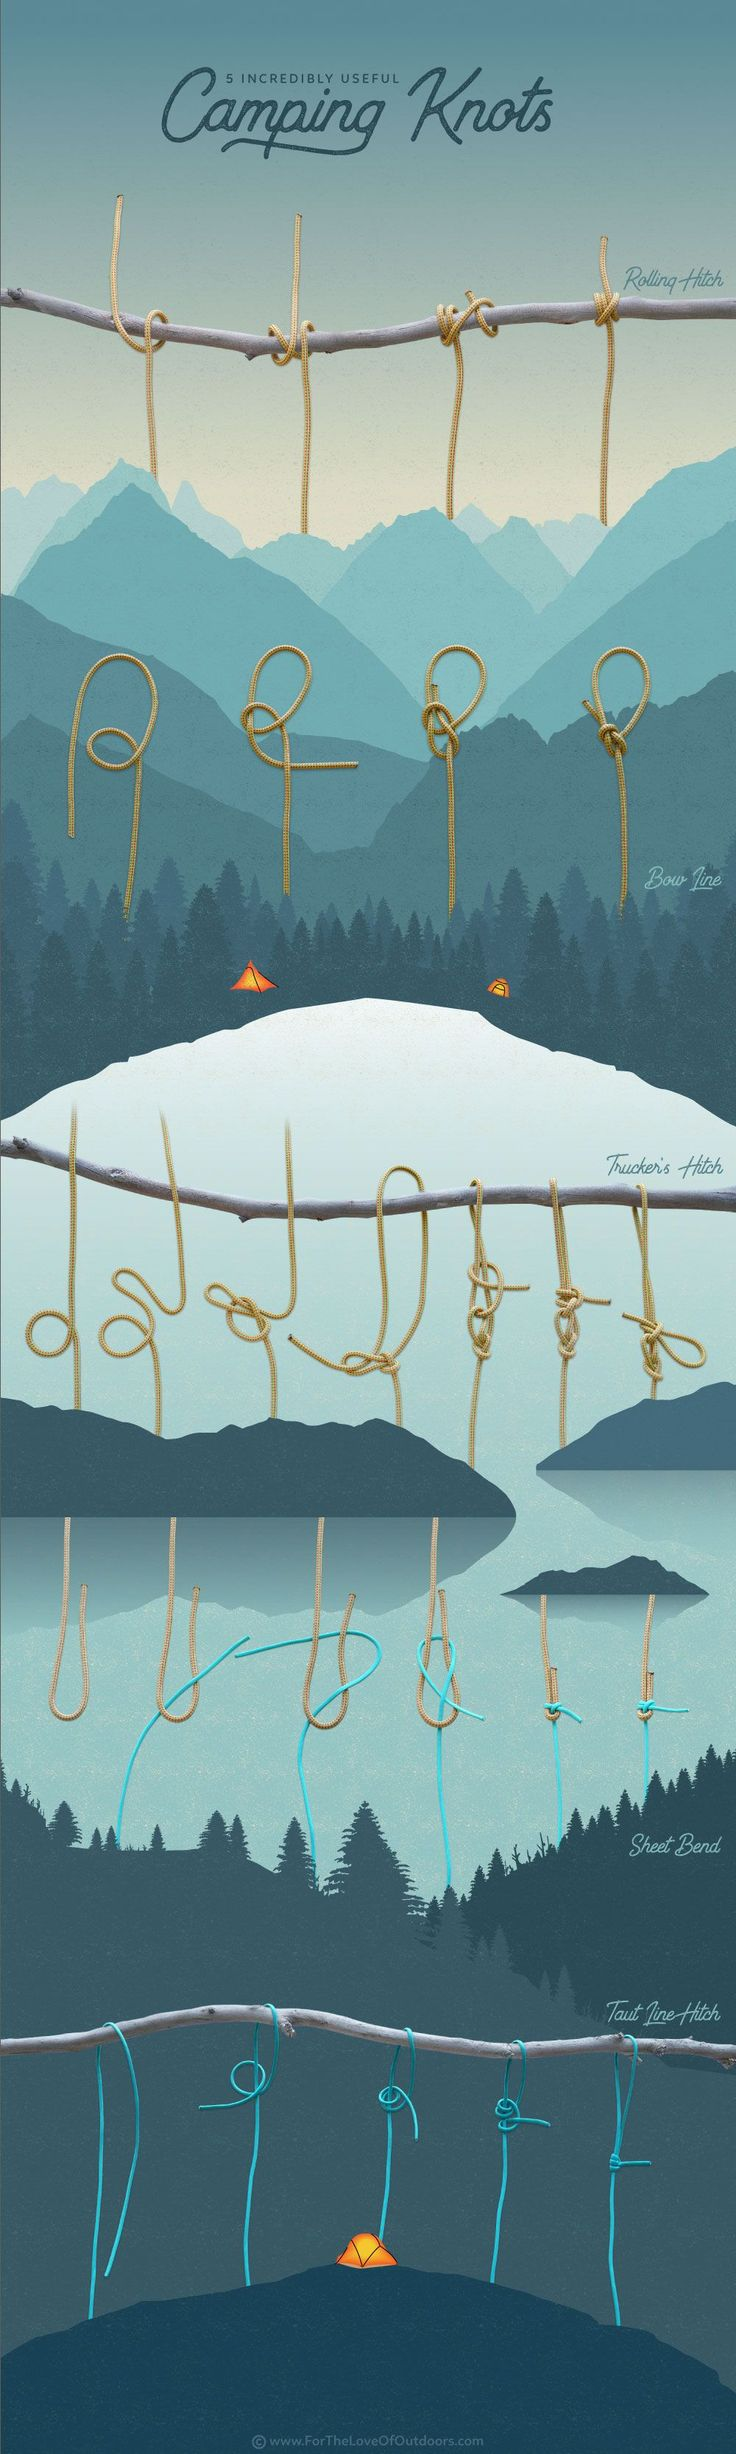 5 Incredibly useful Camping Knots we use most - an Infographic tutorial for outdoor lovers - outdoor skills, rope work, camping tips